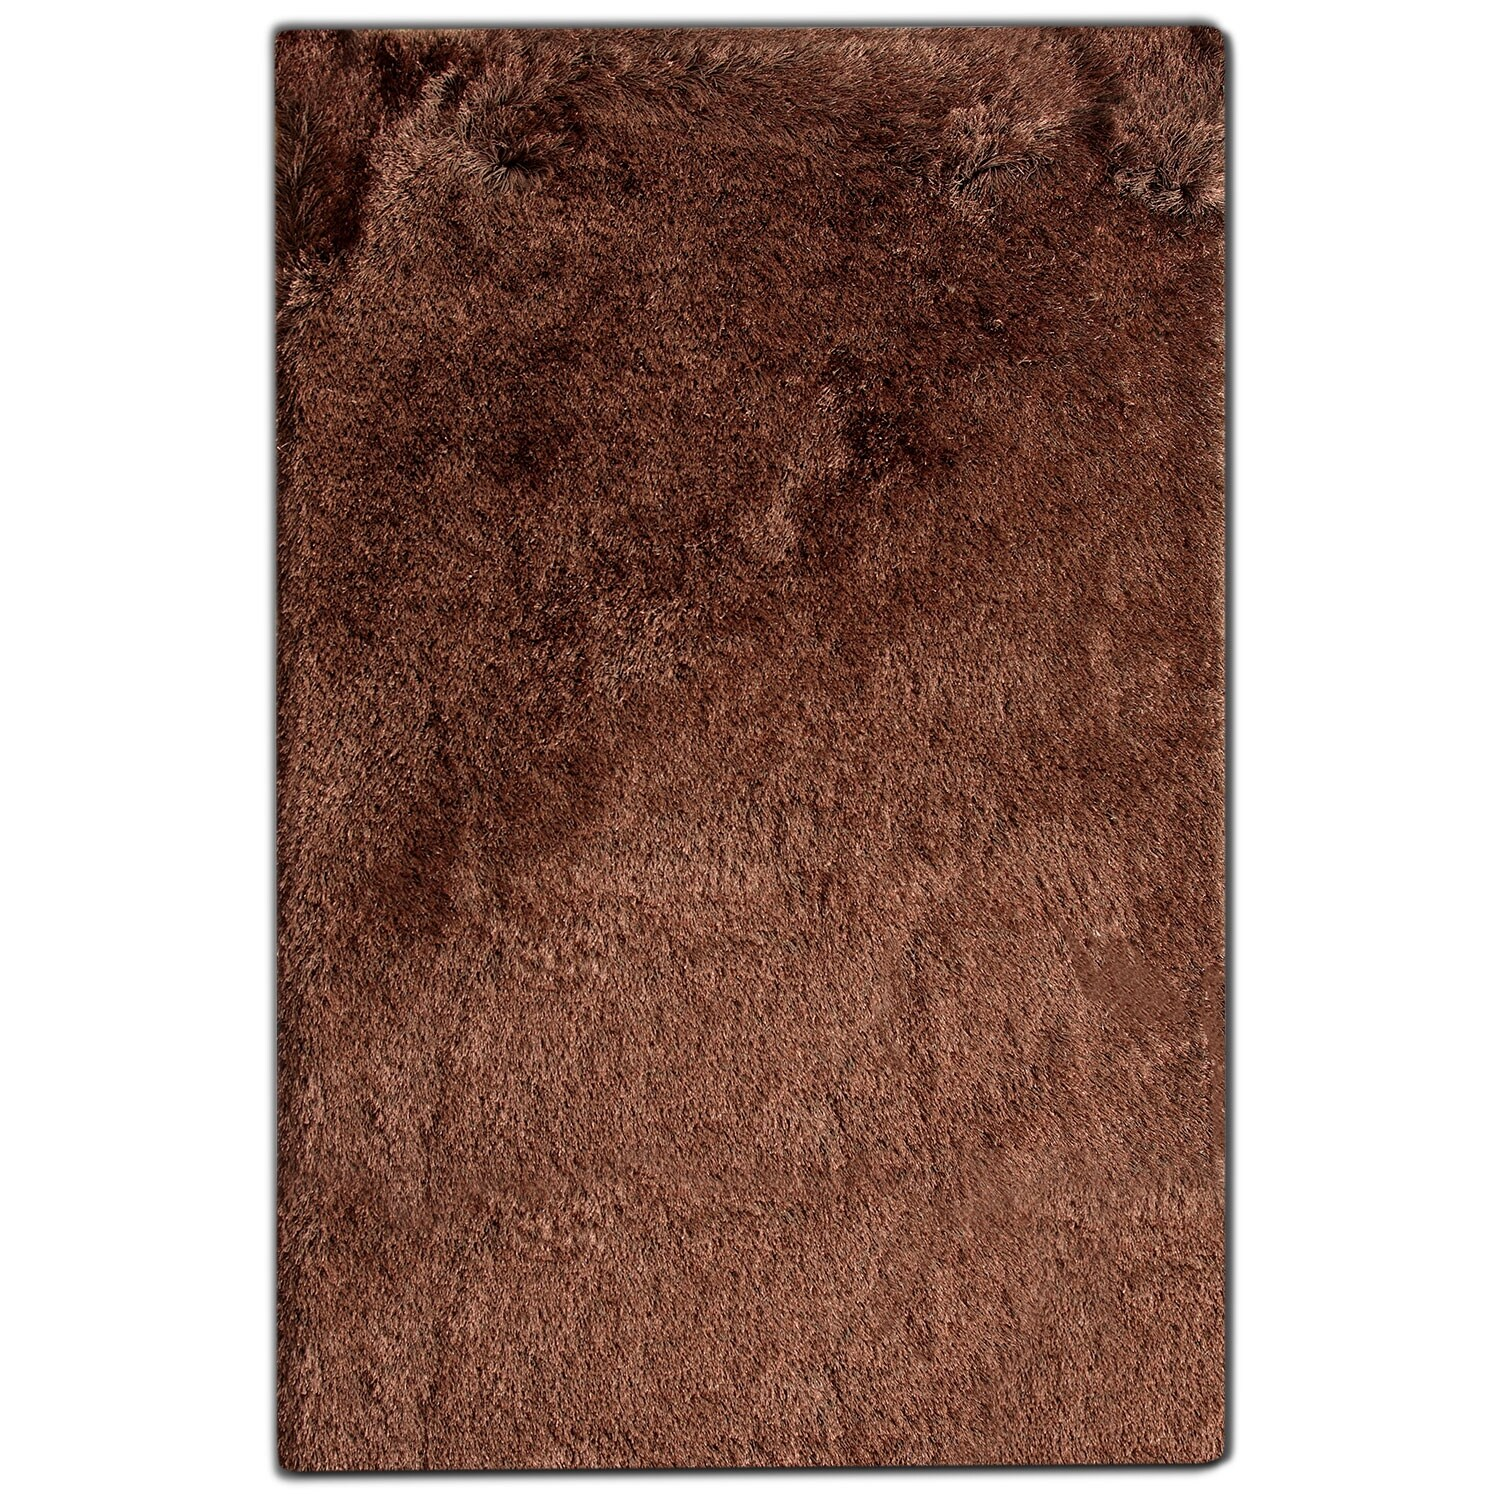 Rugs - Luxe 8' x 10' Area Rug - Chocolate